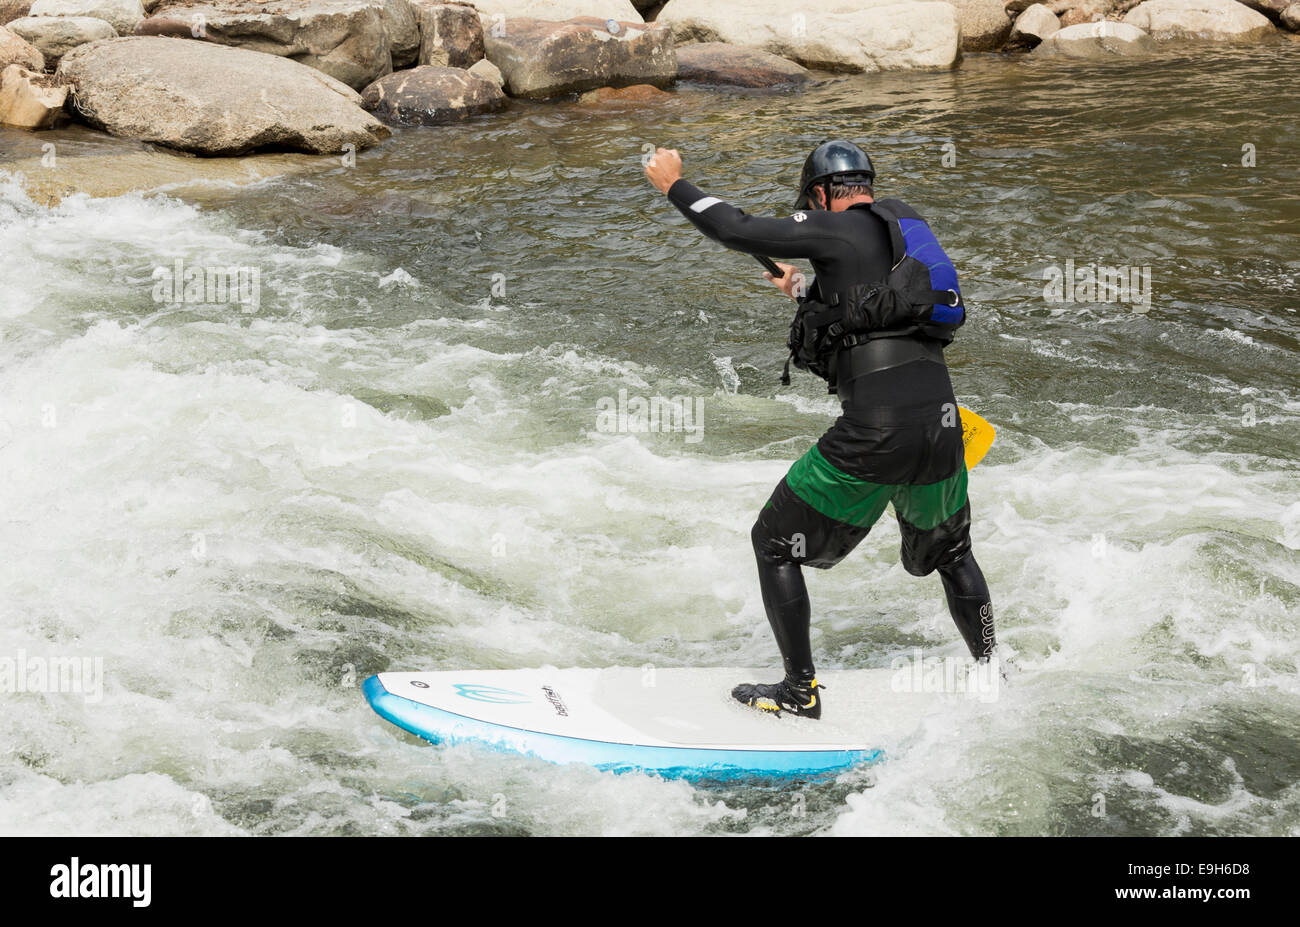 Man on a stand-up paddle board in the rapids of River Arkansas at Buena Vista, Colorado, USA - Stock Image